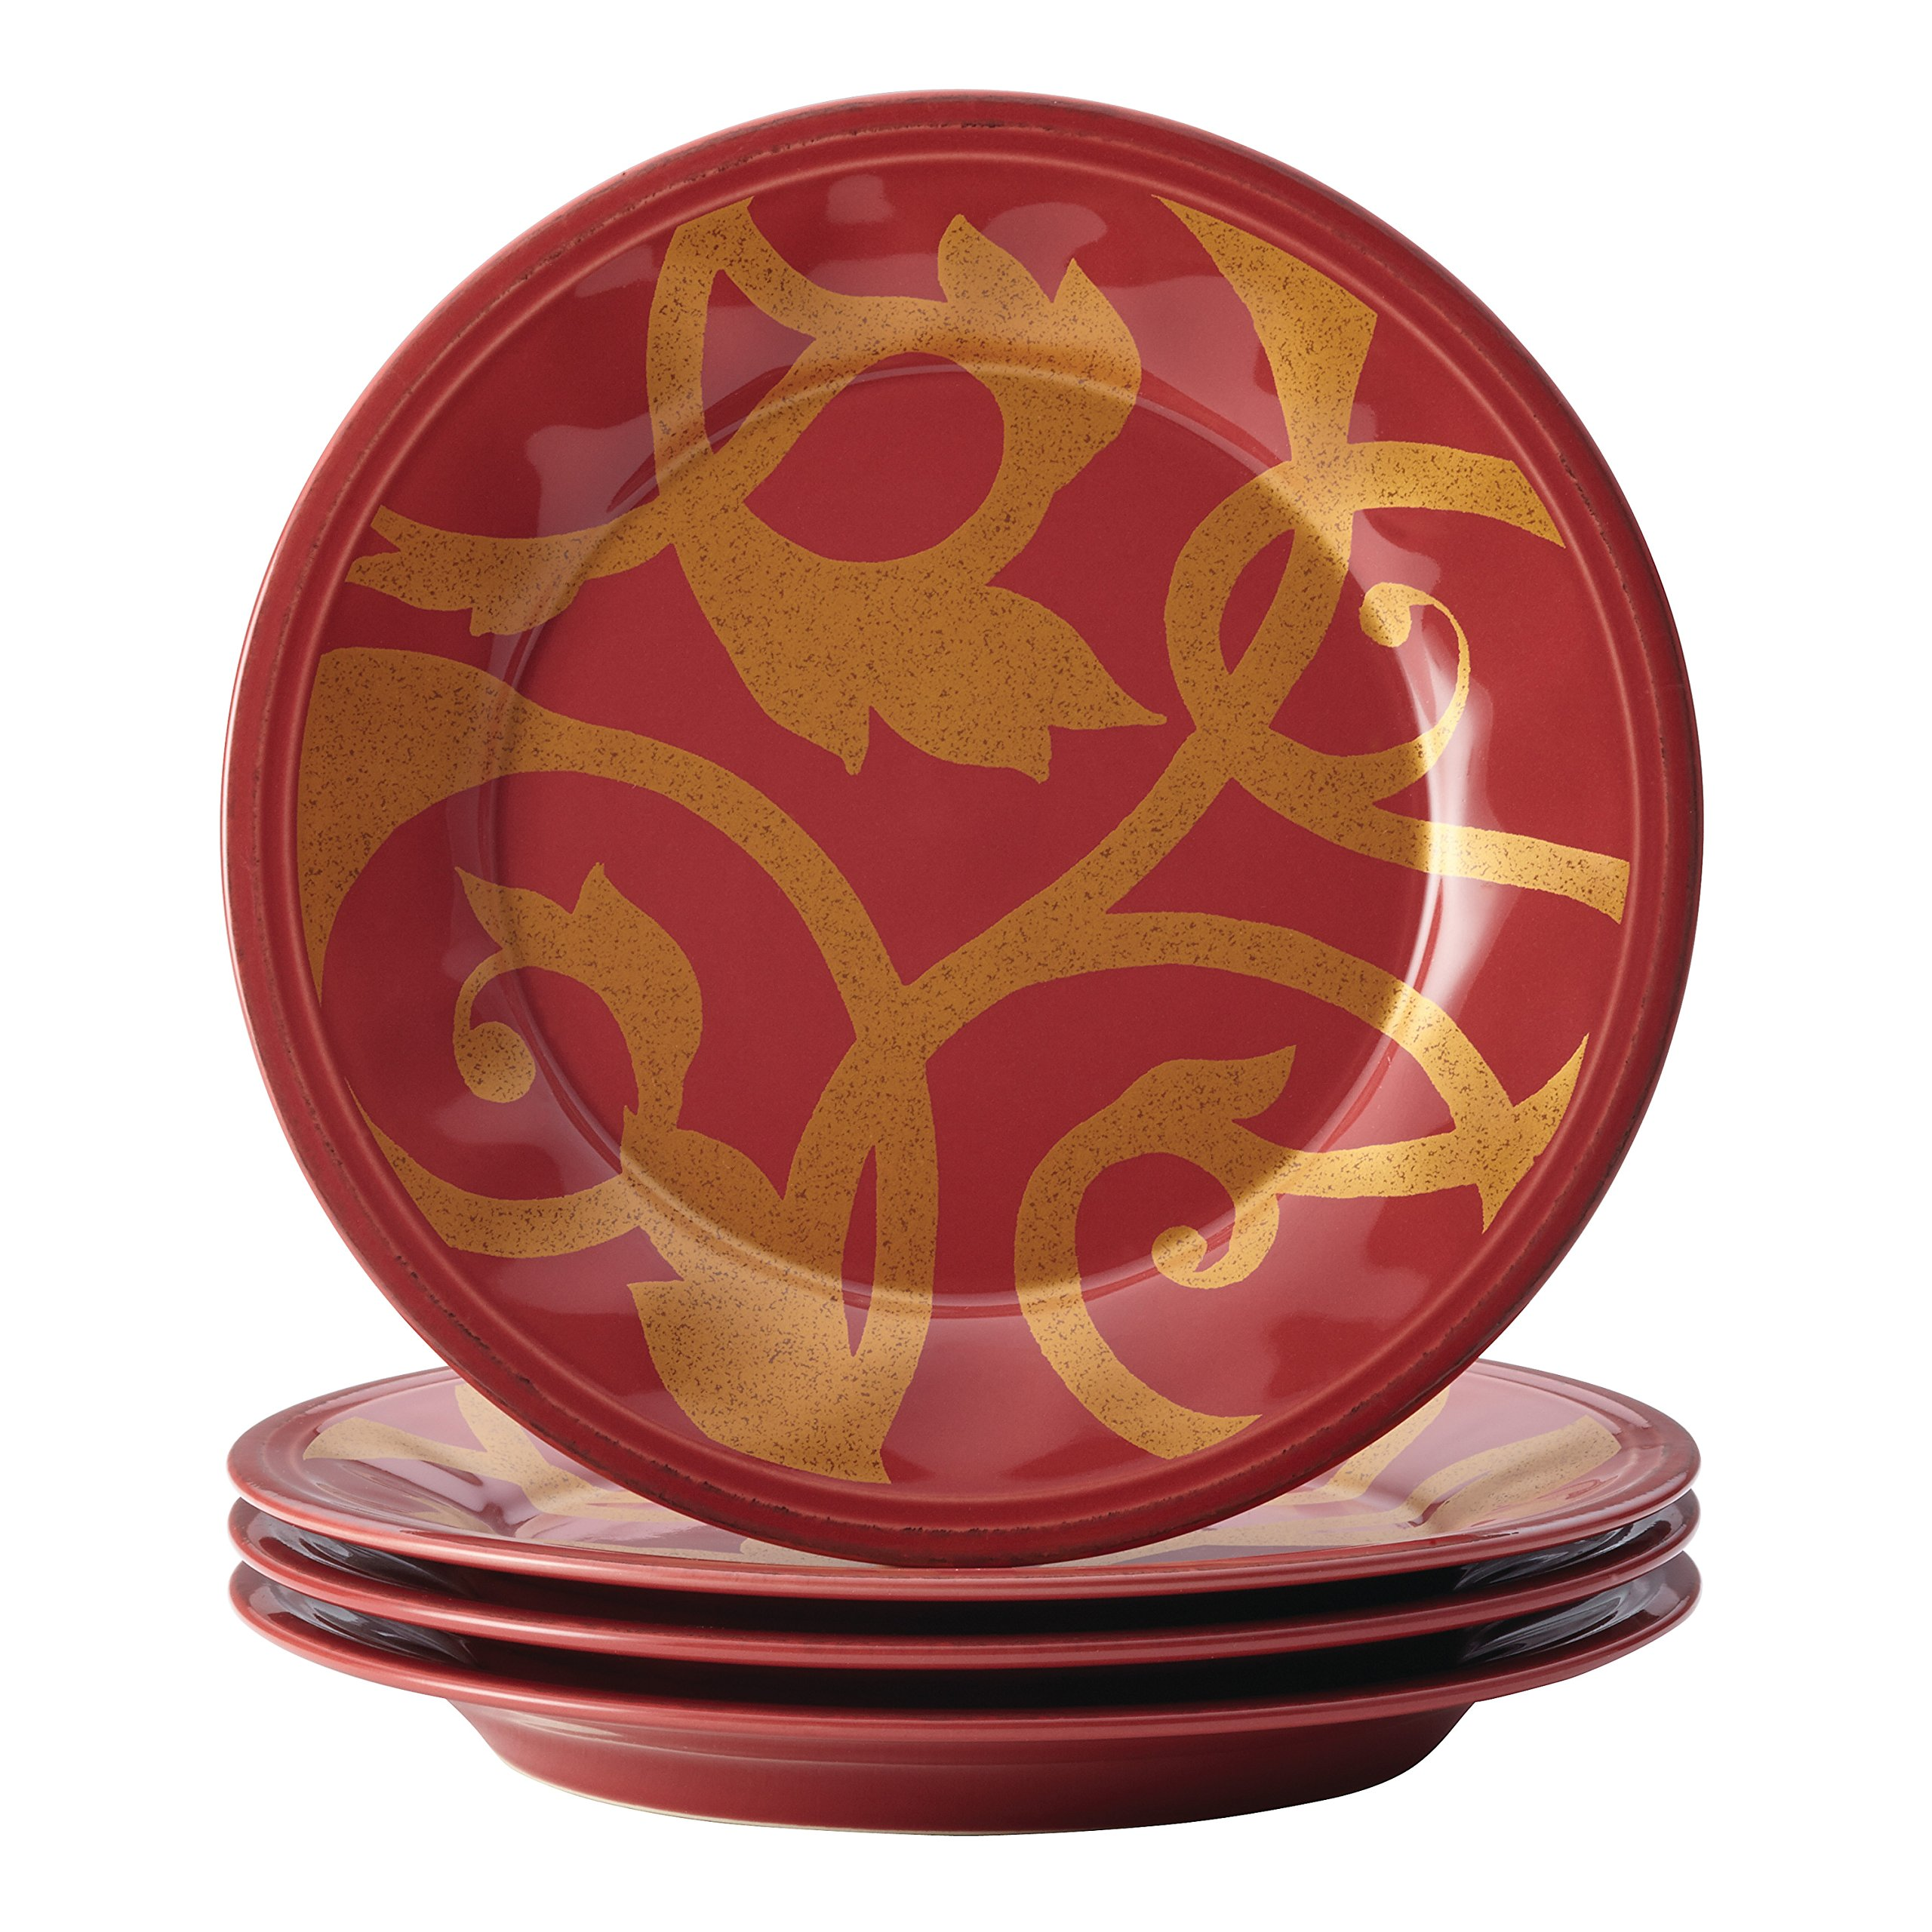 Rachael Ray Dinnerware Gold Scroll 4-Piece Salad Plate Set, Cranberry Red by Rachael Ray